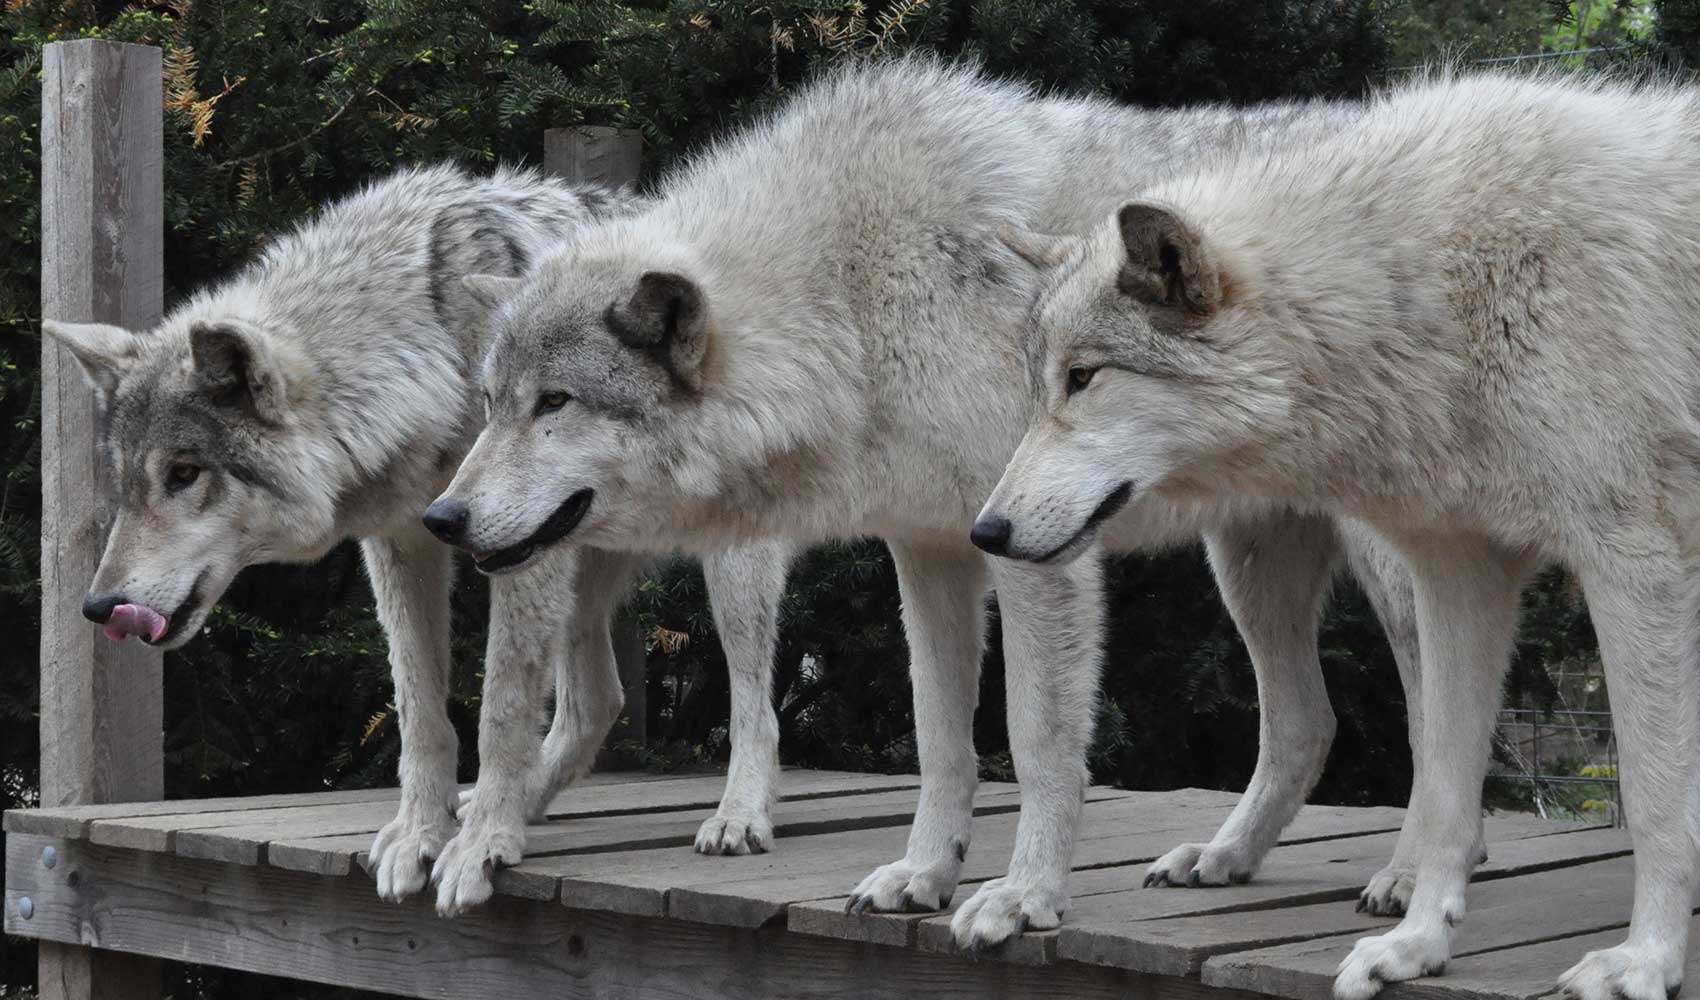 Cheerful Make An Appointment To Visit Our Farm Woods Wolfdogs Animal Rescue Public Charity Nj Famous Direwolf Names Famous Wolf Names Male bark post Famous Wolf Names